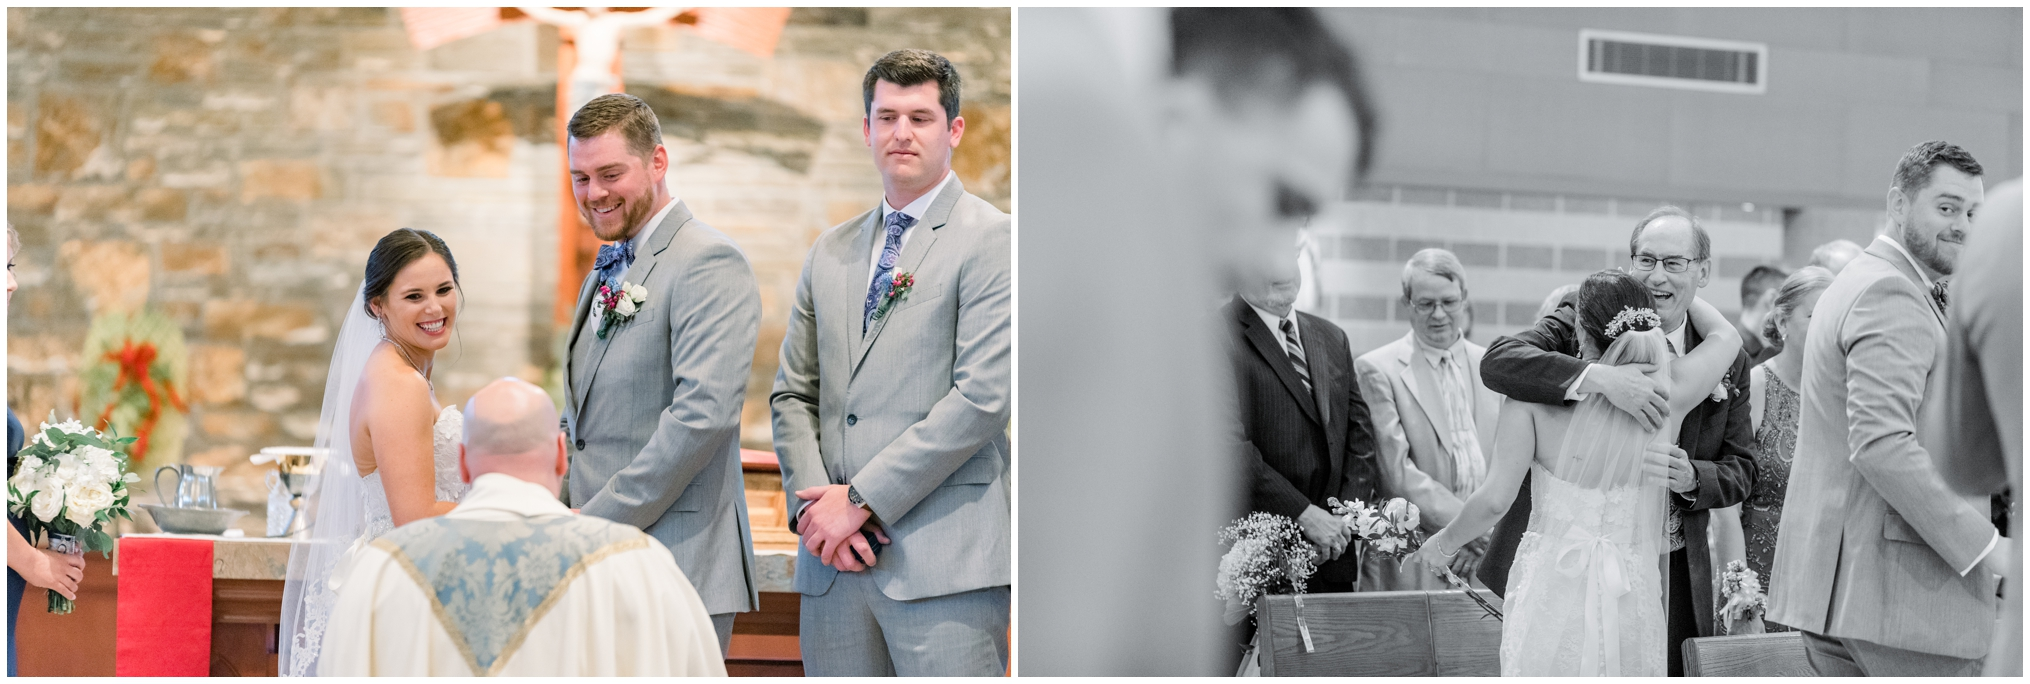 Krista Brackin Photography | April Wedding at The Carriage House at Rockwood Park_0047.jpg